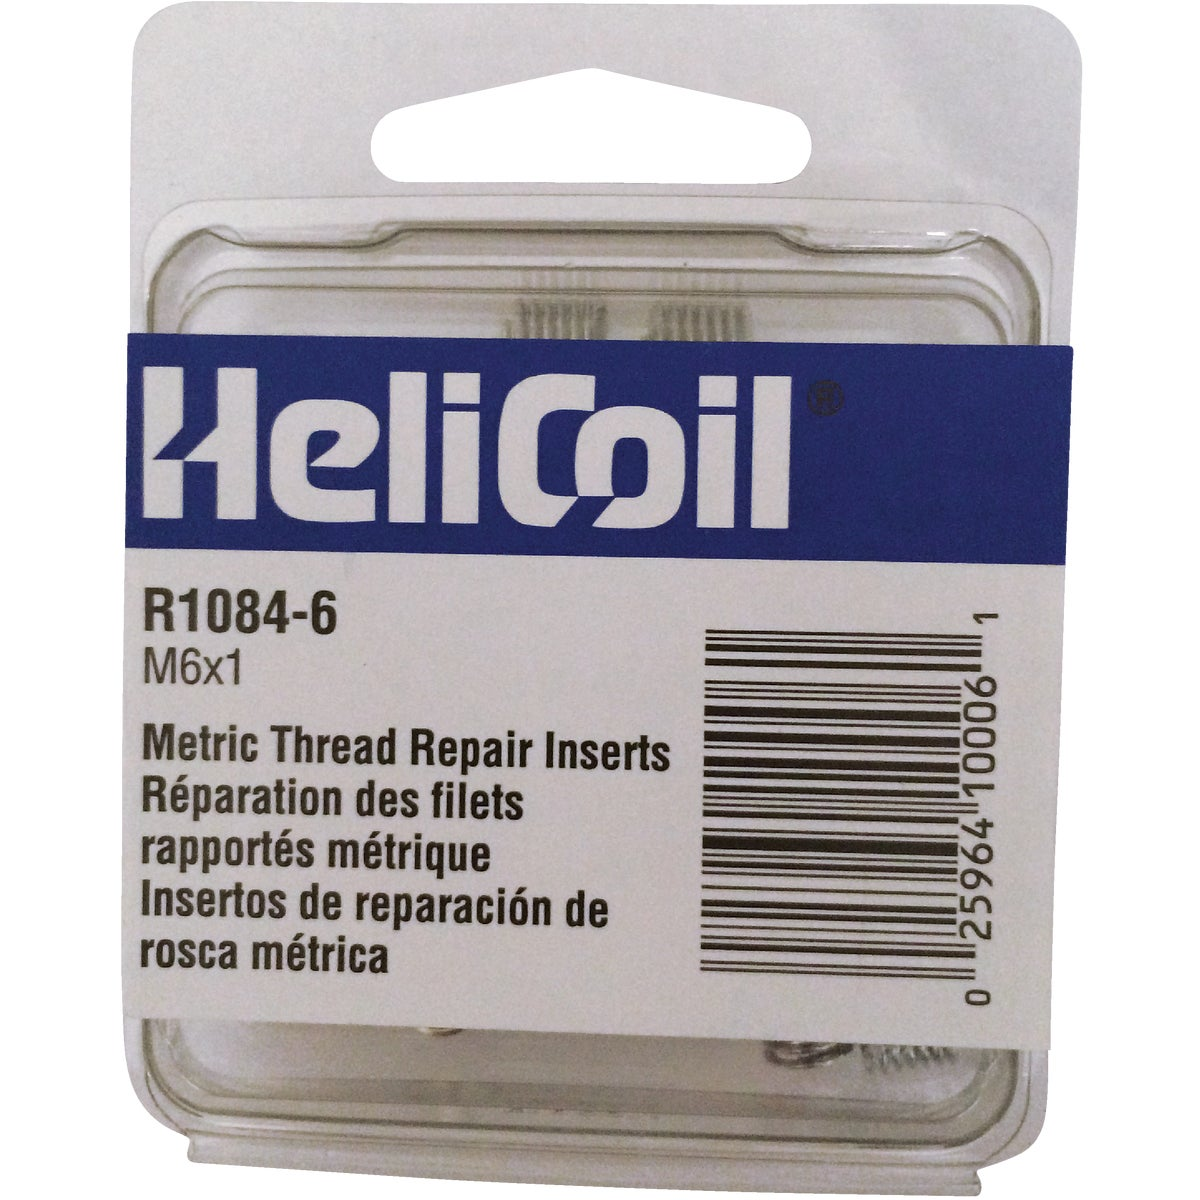 M6.1 THREAD REPAIR - R1084-6 by Helicoil Div Emhart